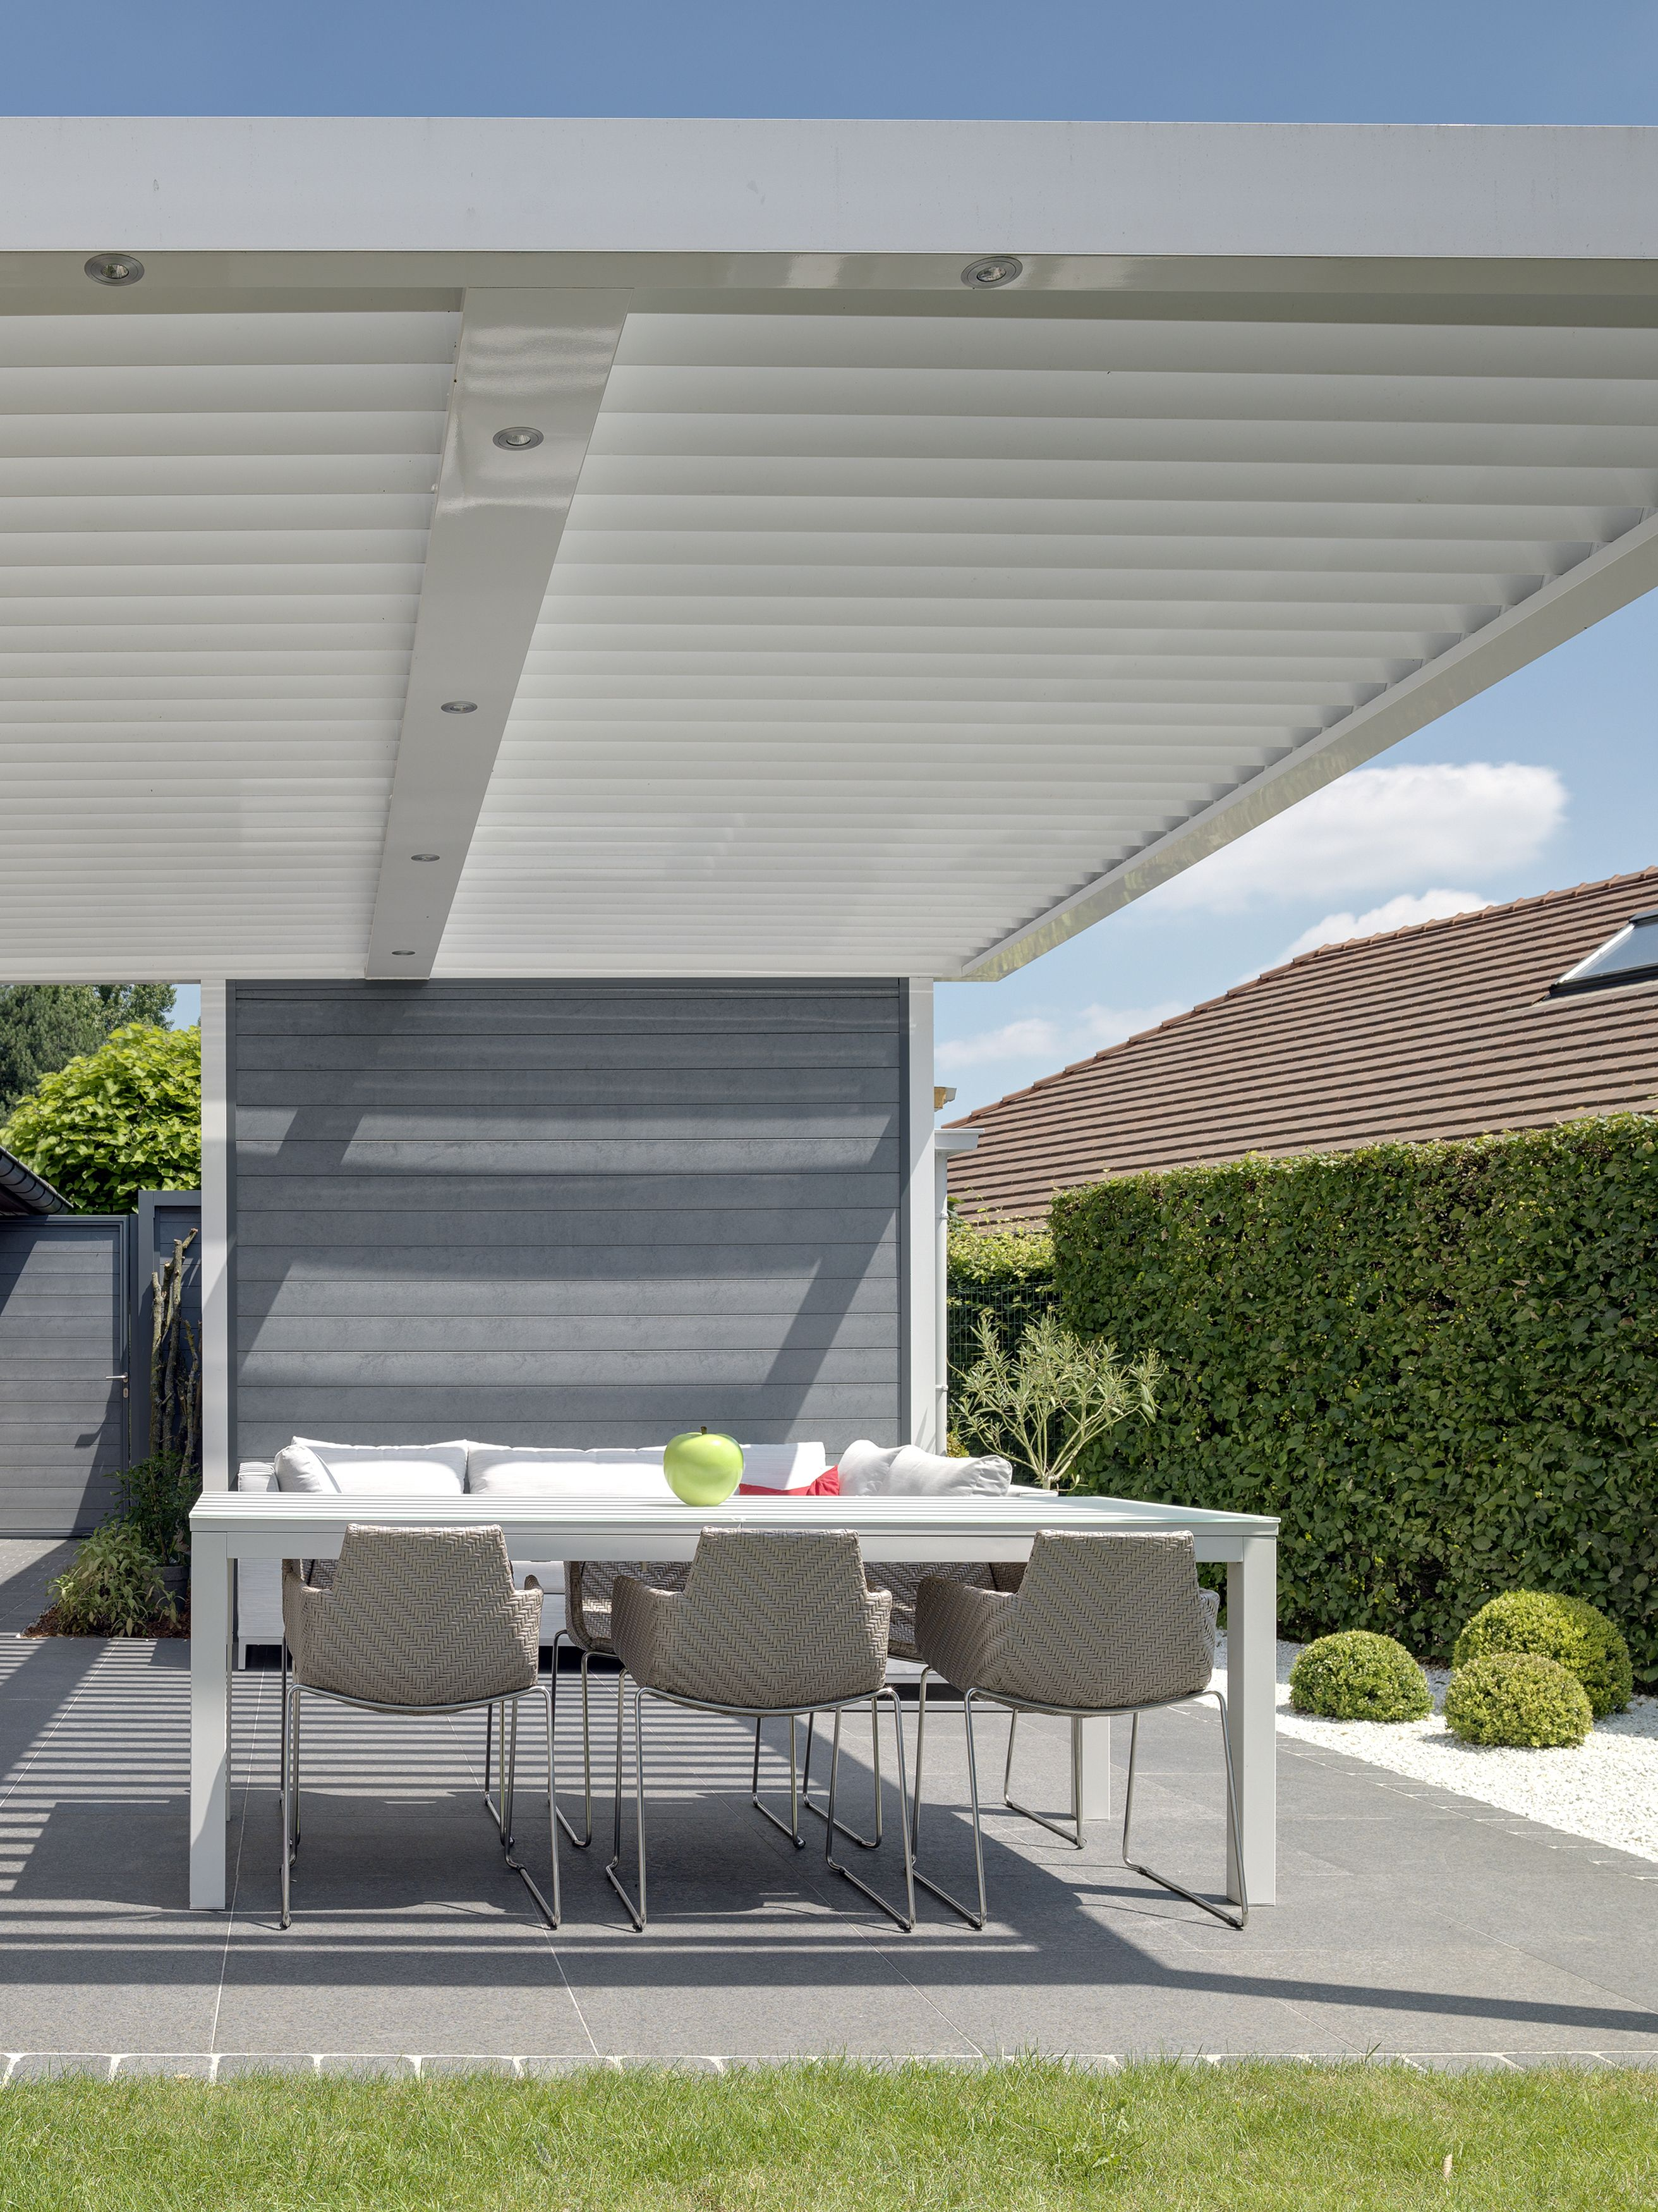 The Umbris patio roofing system is a bespoke ... on Bespoke Outdoor Living id=46603